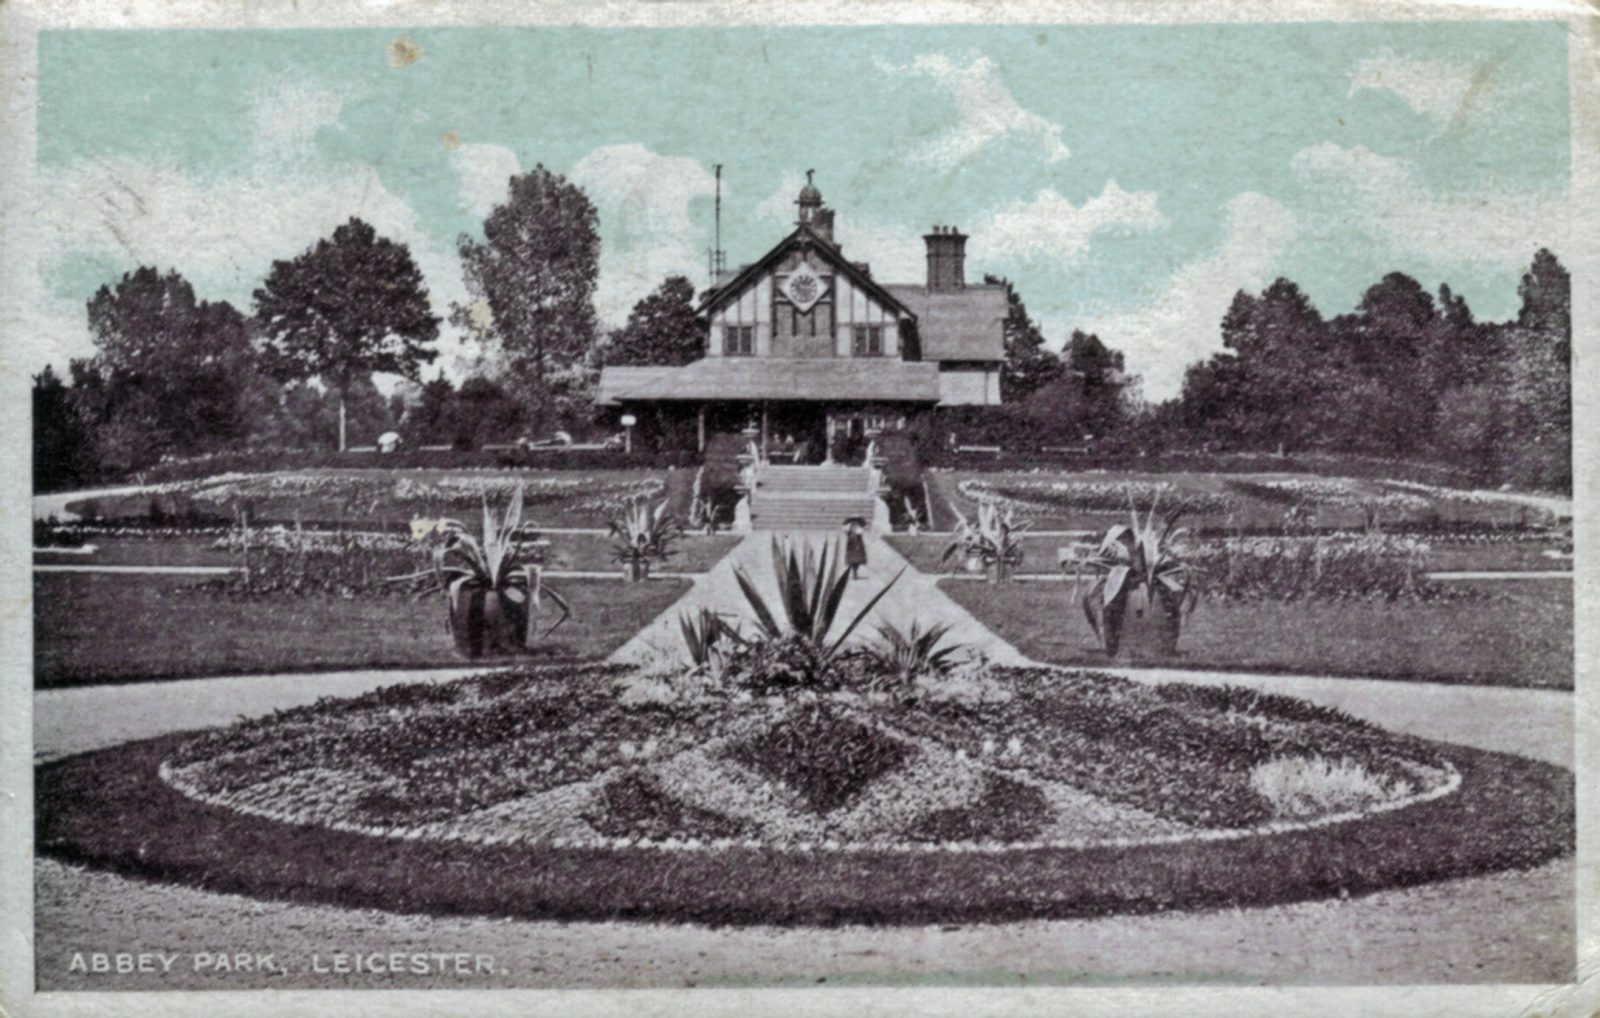 Abbey Park, Leicester. 1901-1920: The Pavilion and formal bedding. (File:1272)